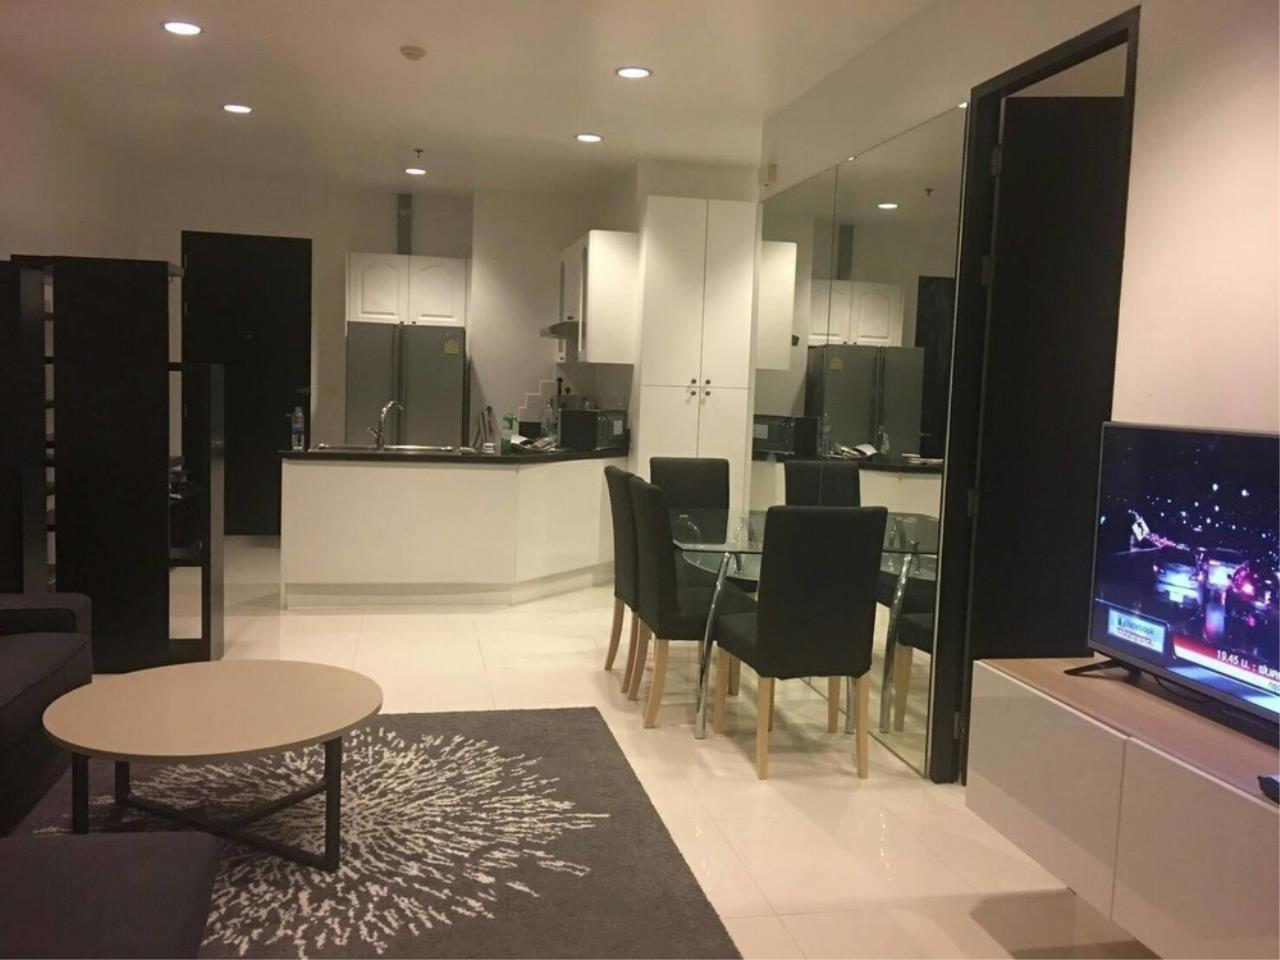 Agent - Thitiporn Sriboola Agency's Baan Klang Krung Siam-Pathumwan, High rise condo for rent, near  Ratchathewi 260 m / 4 minutes by foot 1